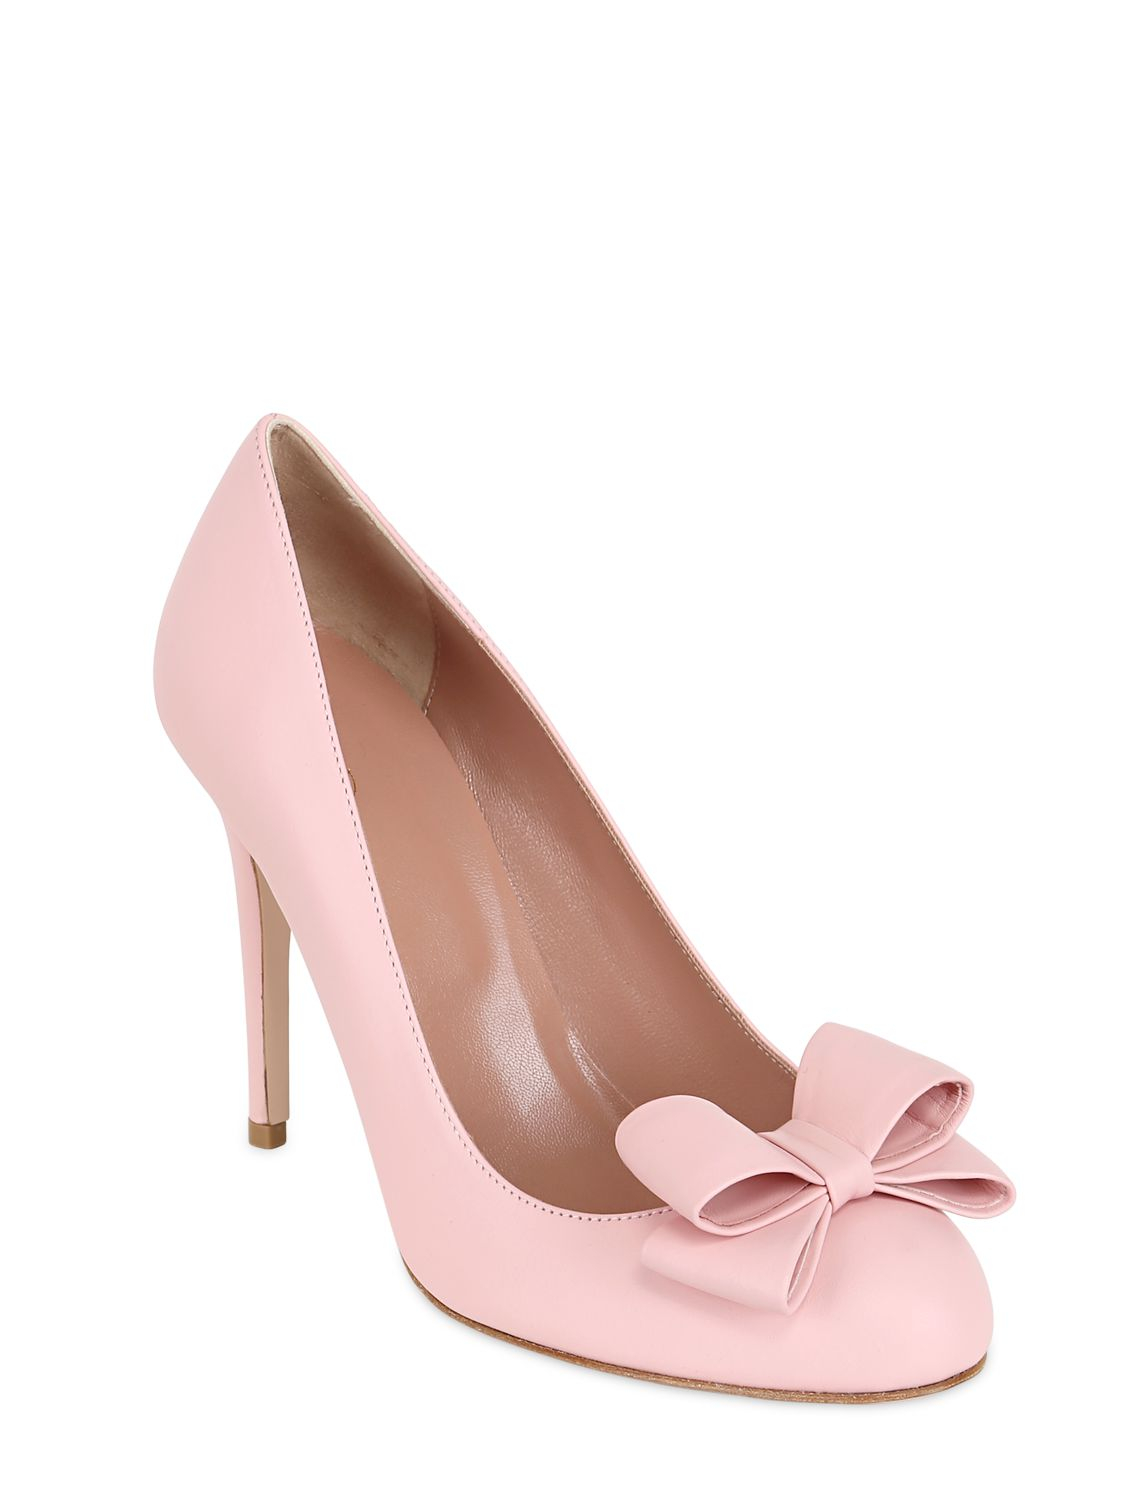 RED Valentino Bow pointed pumps uIH0Rl7Ezq